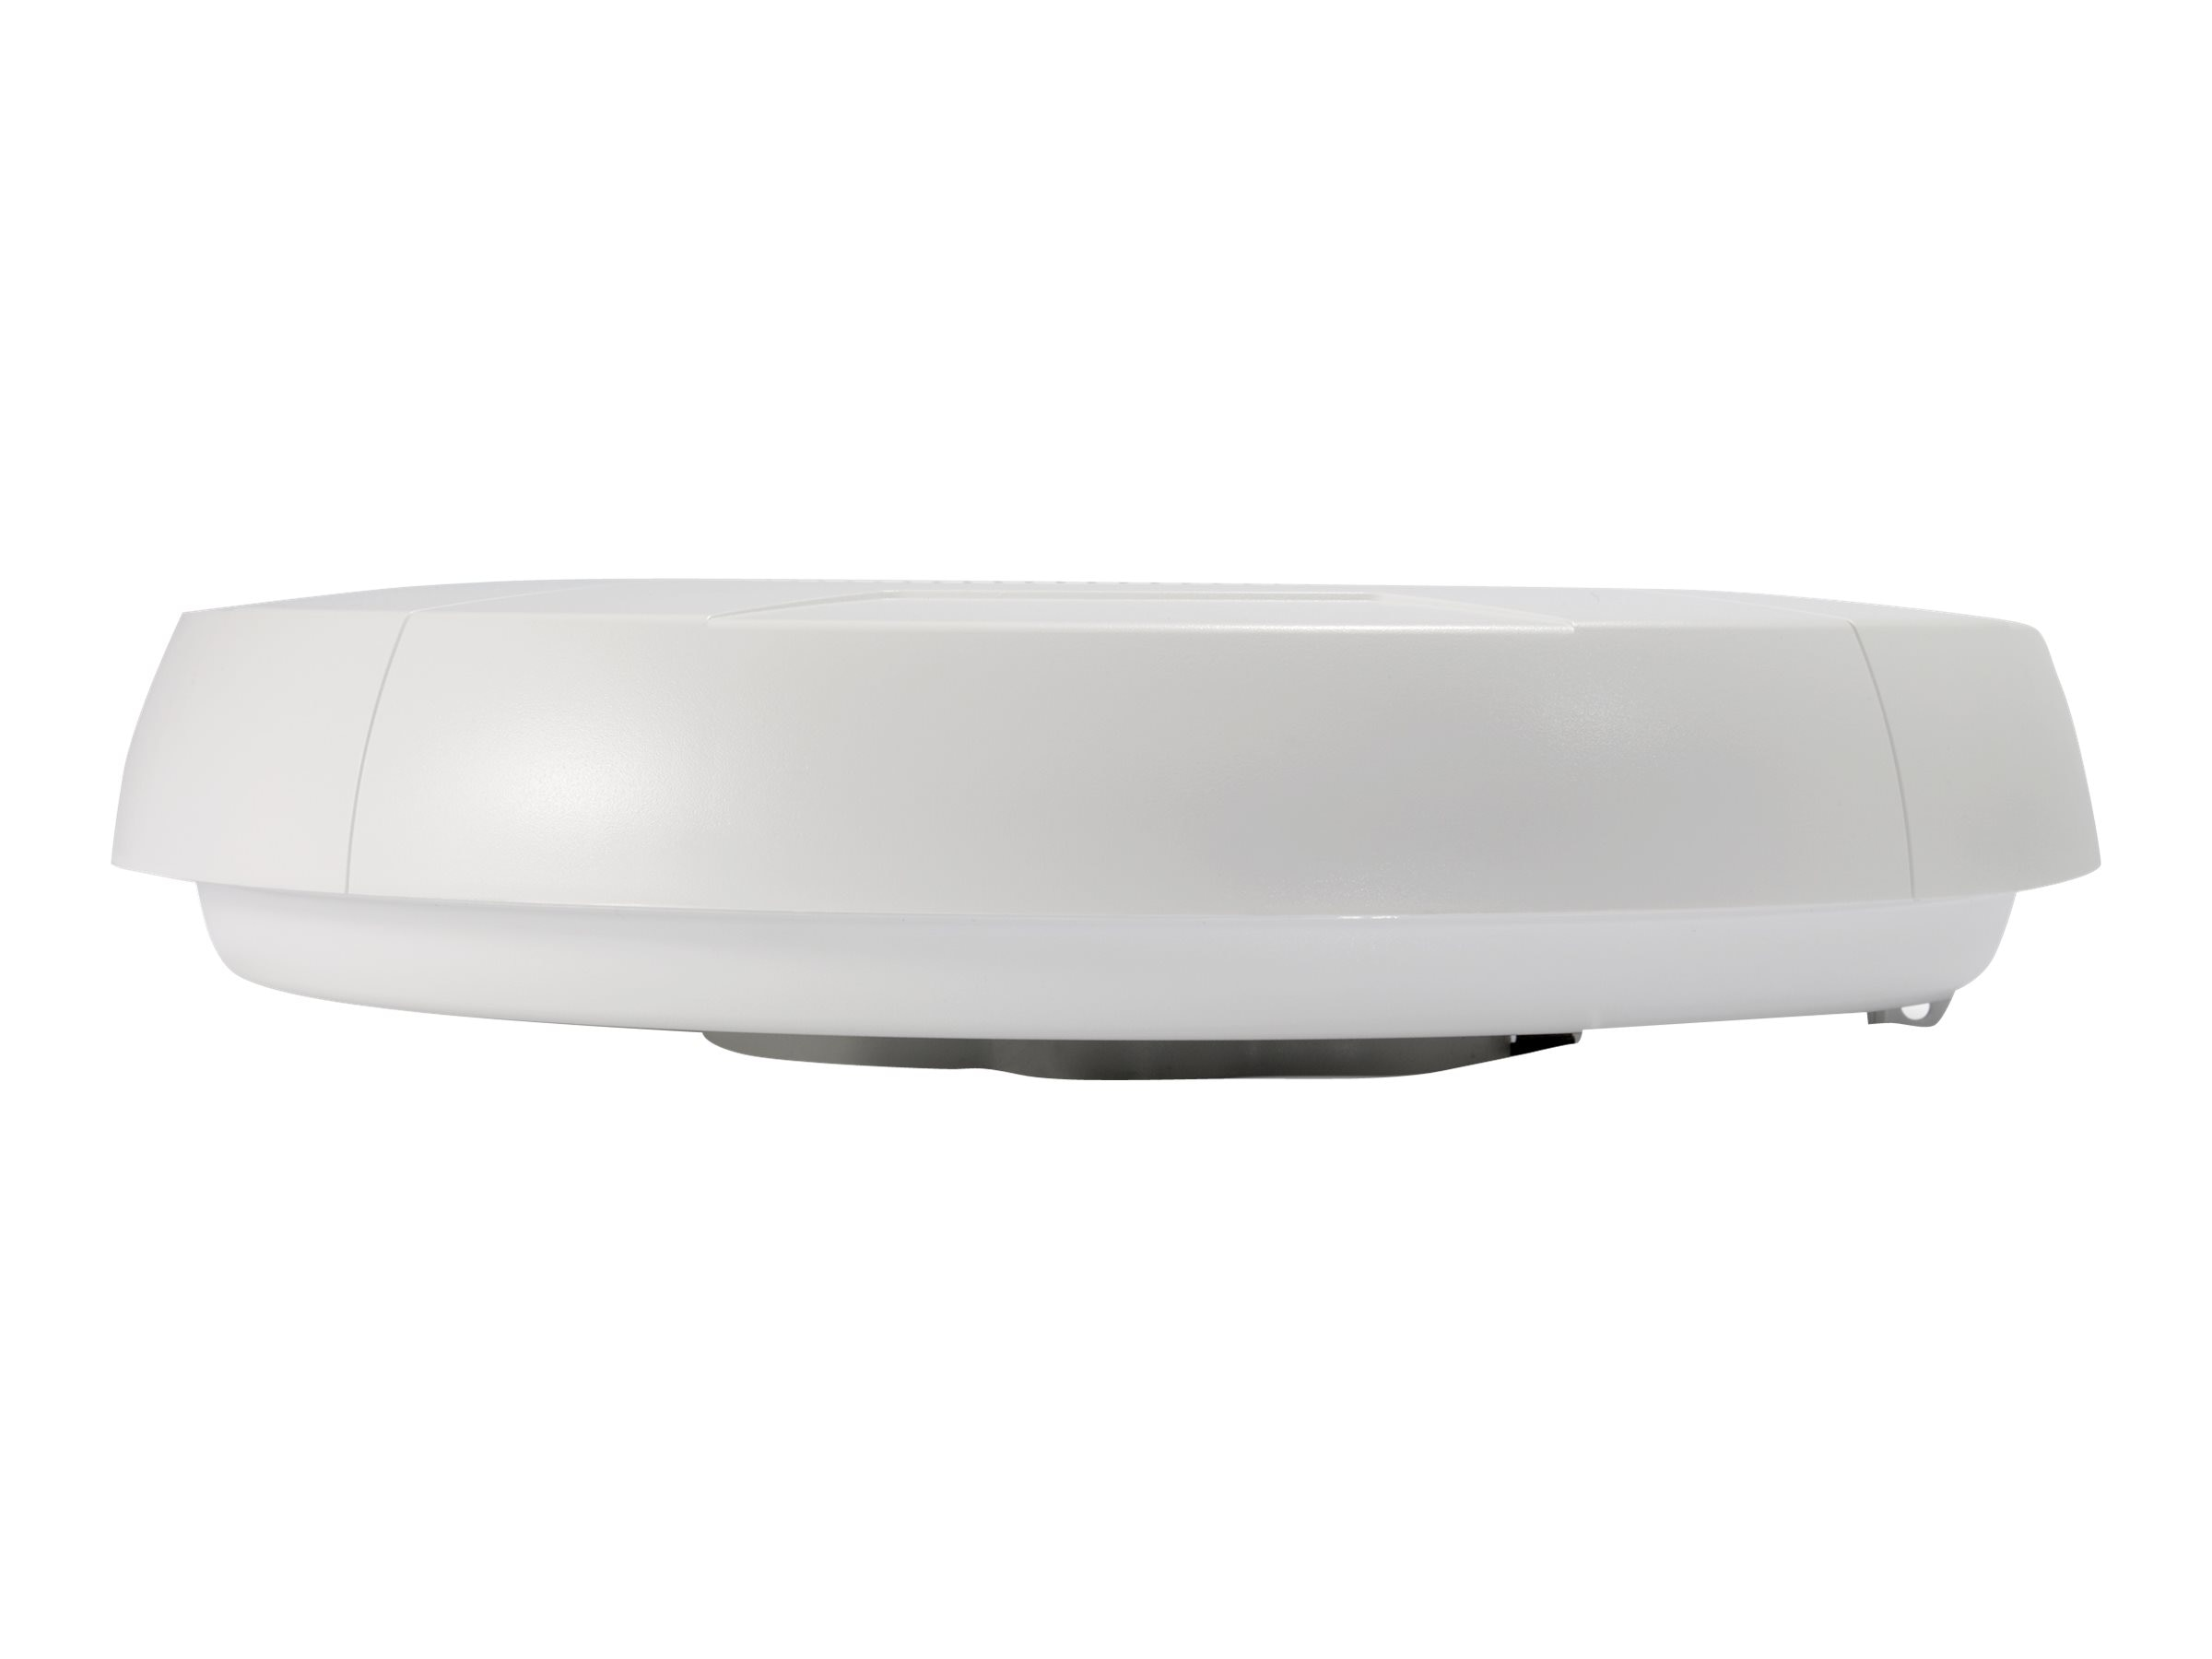 Xirrus XR Array w 8 1.3Gbps 802.11ac, XR-4836, 17995817, Wireless Access Points & Bridges